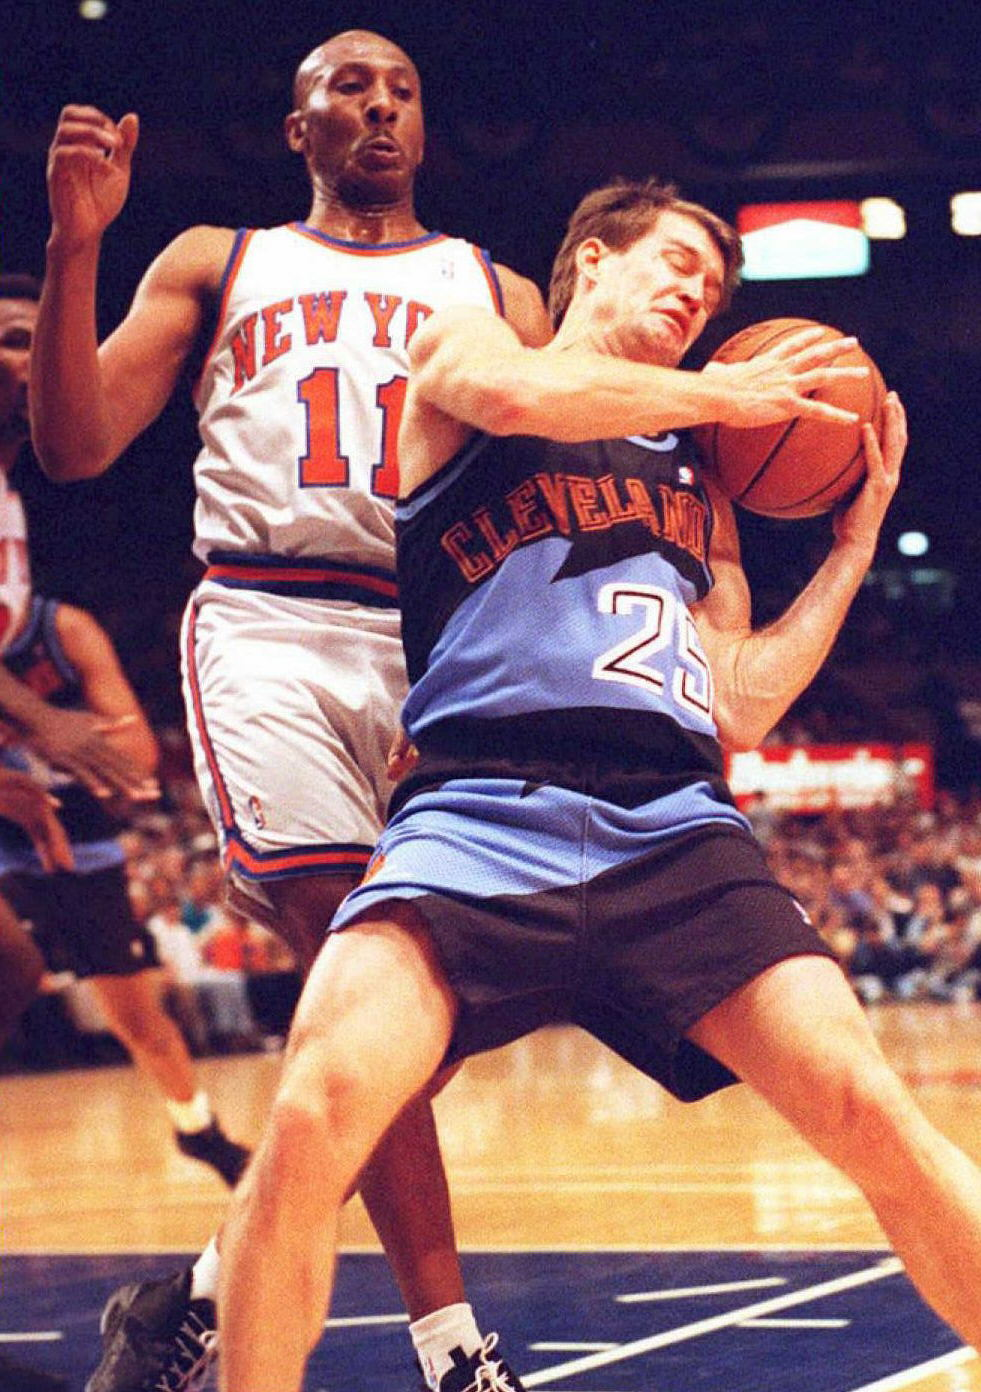 Even Mark Price's sweet shooting stroke couldn't make these jerseys look good. He can't even bare to look down at his own jersey.